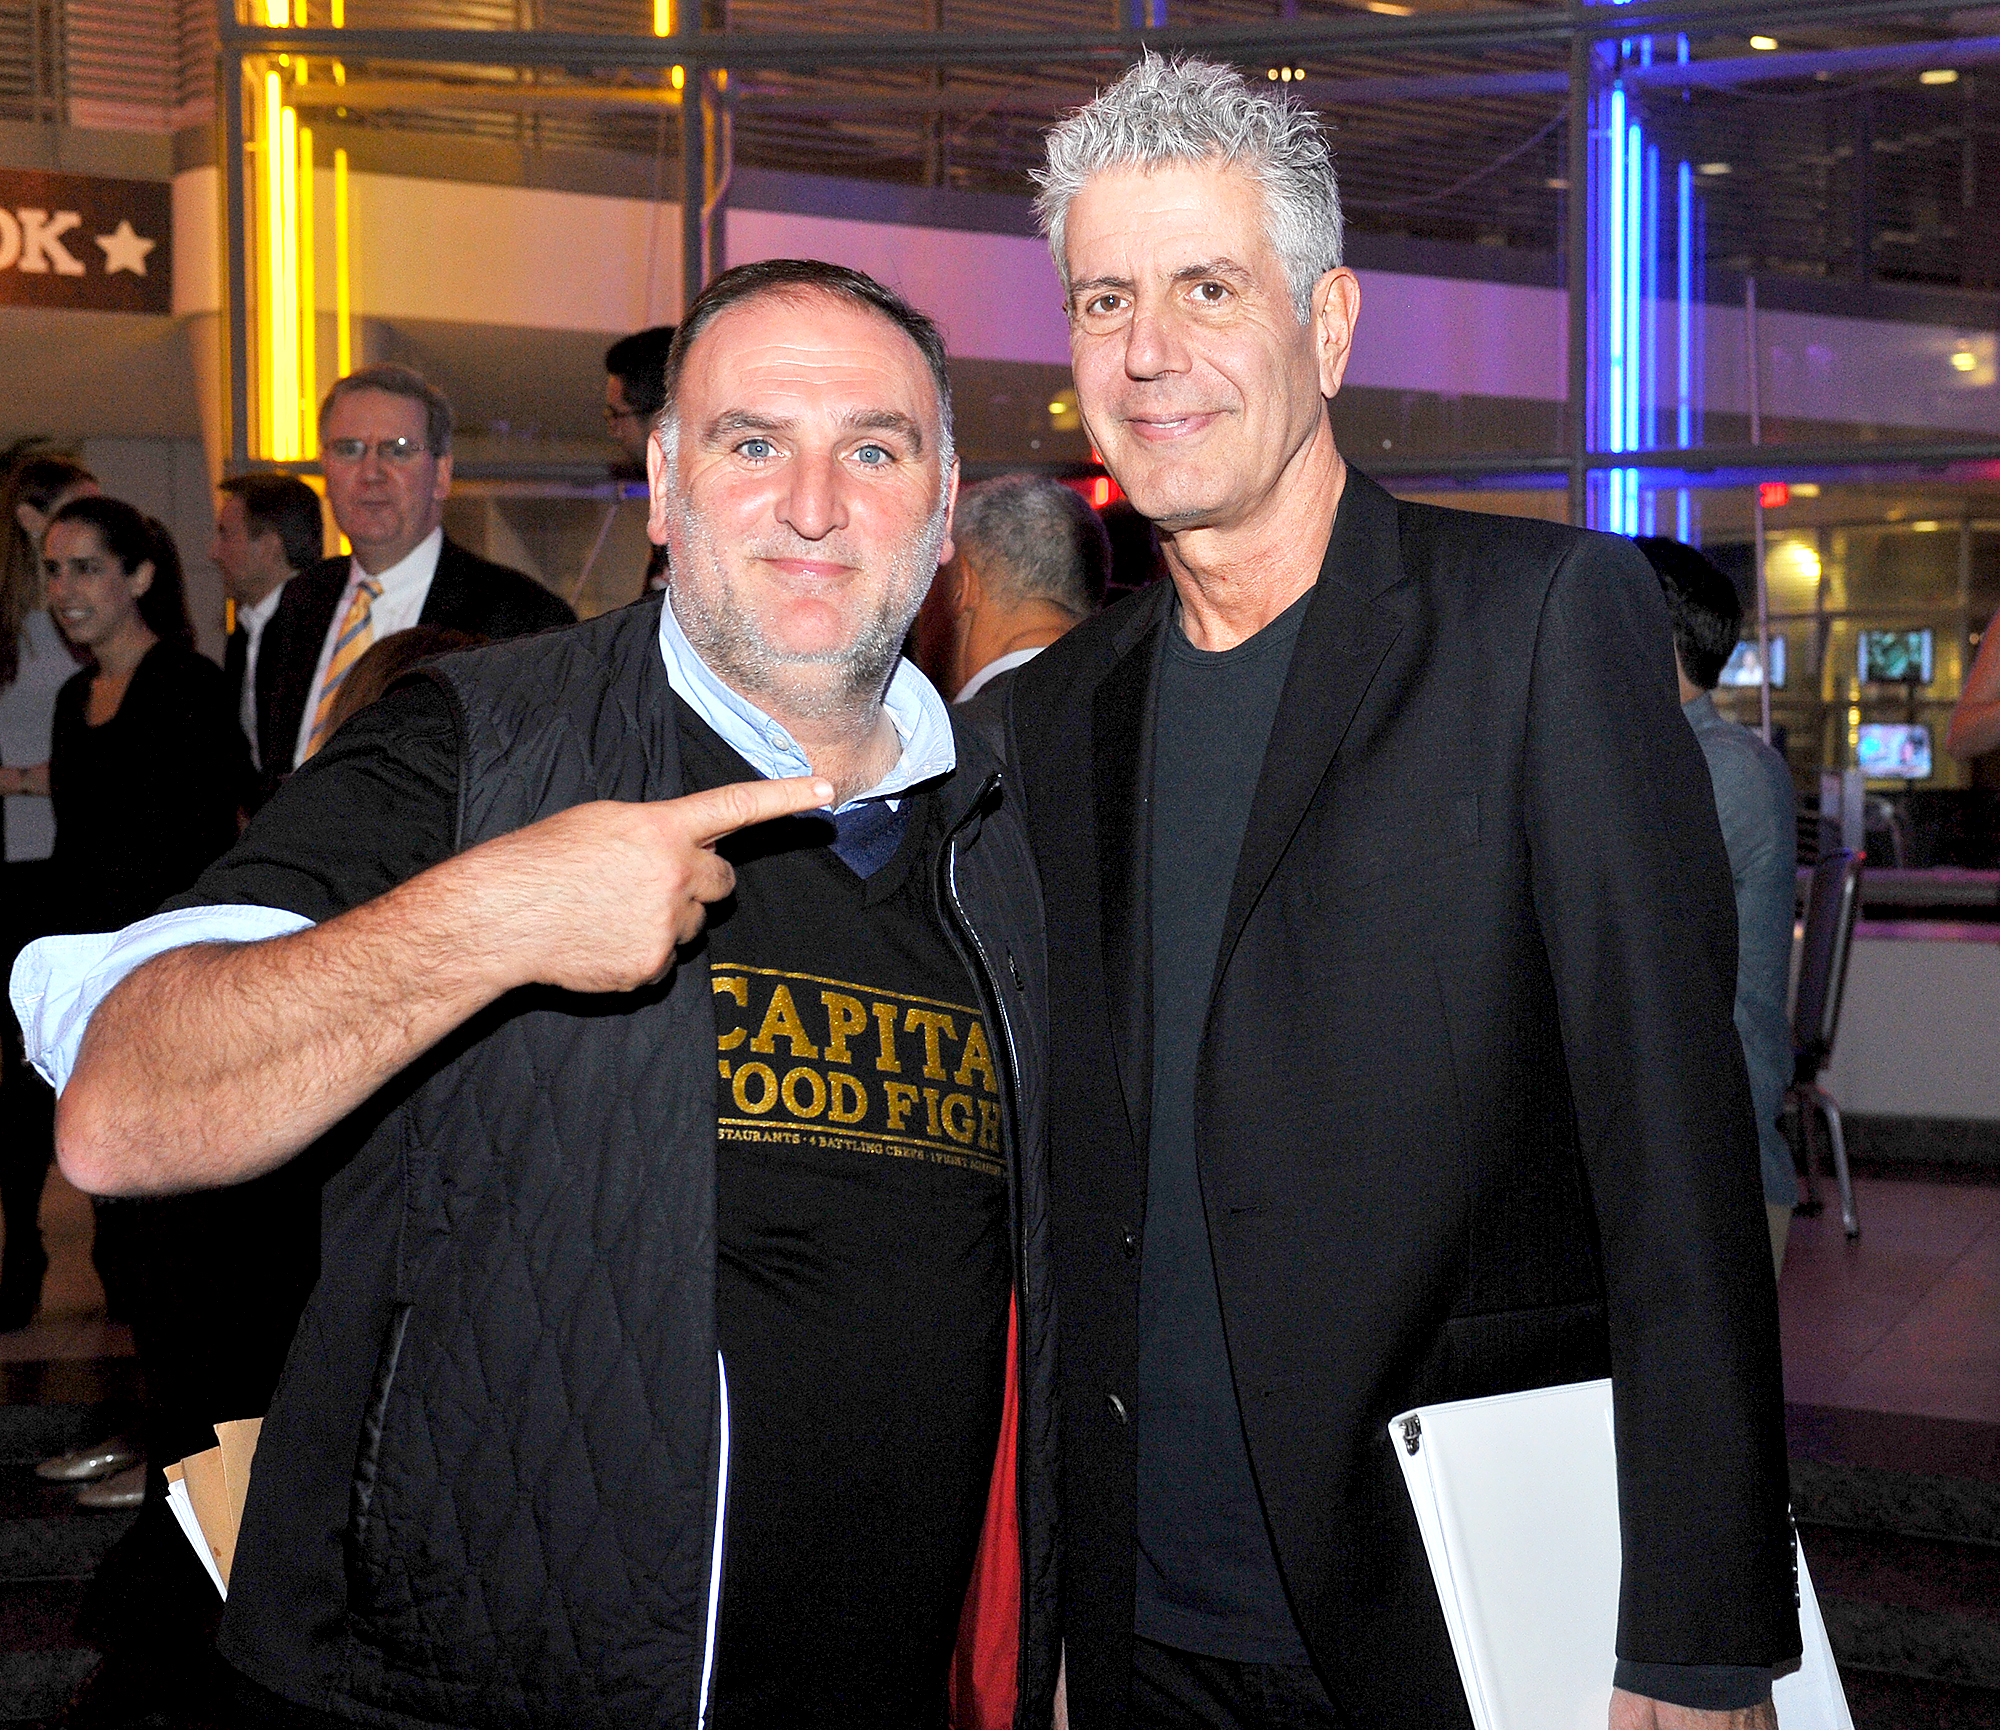 Jose-Andres-and-Anthony-Bourdain